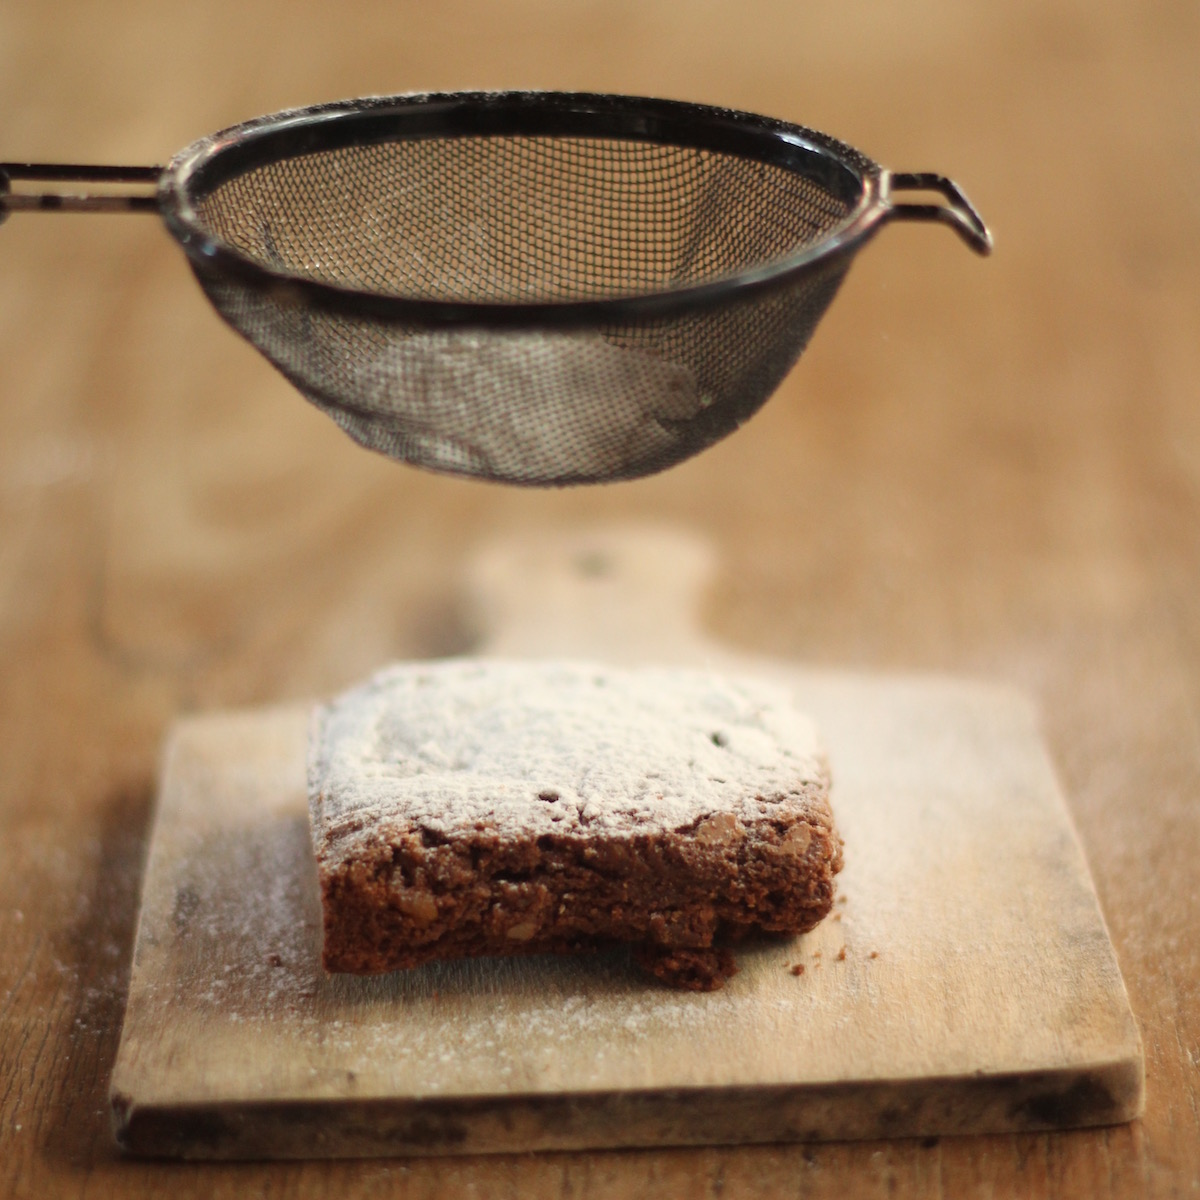 Square de brownie